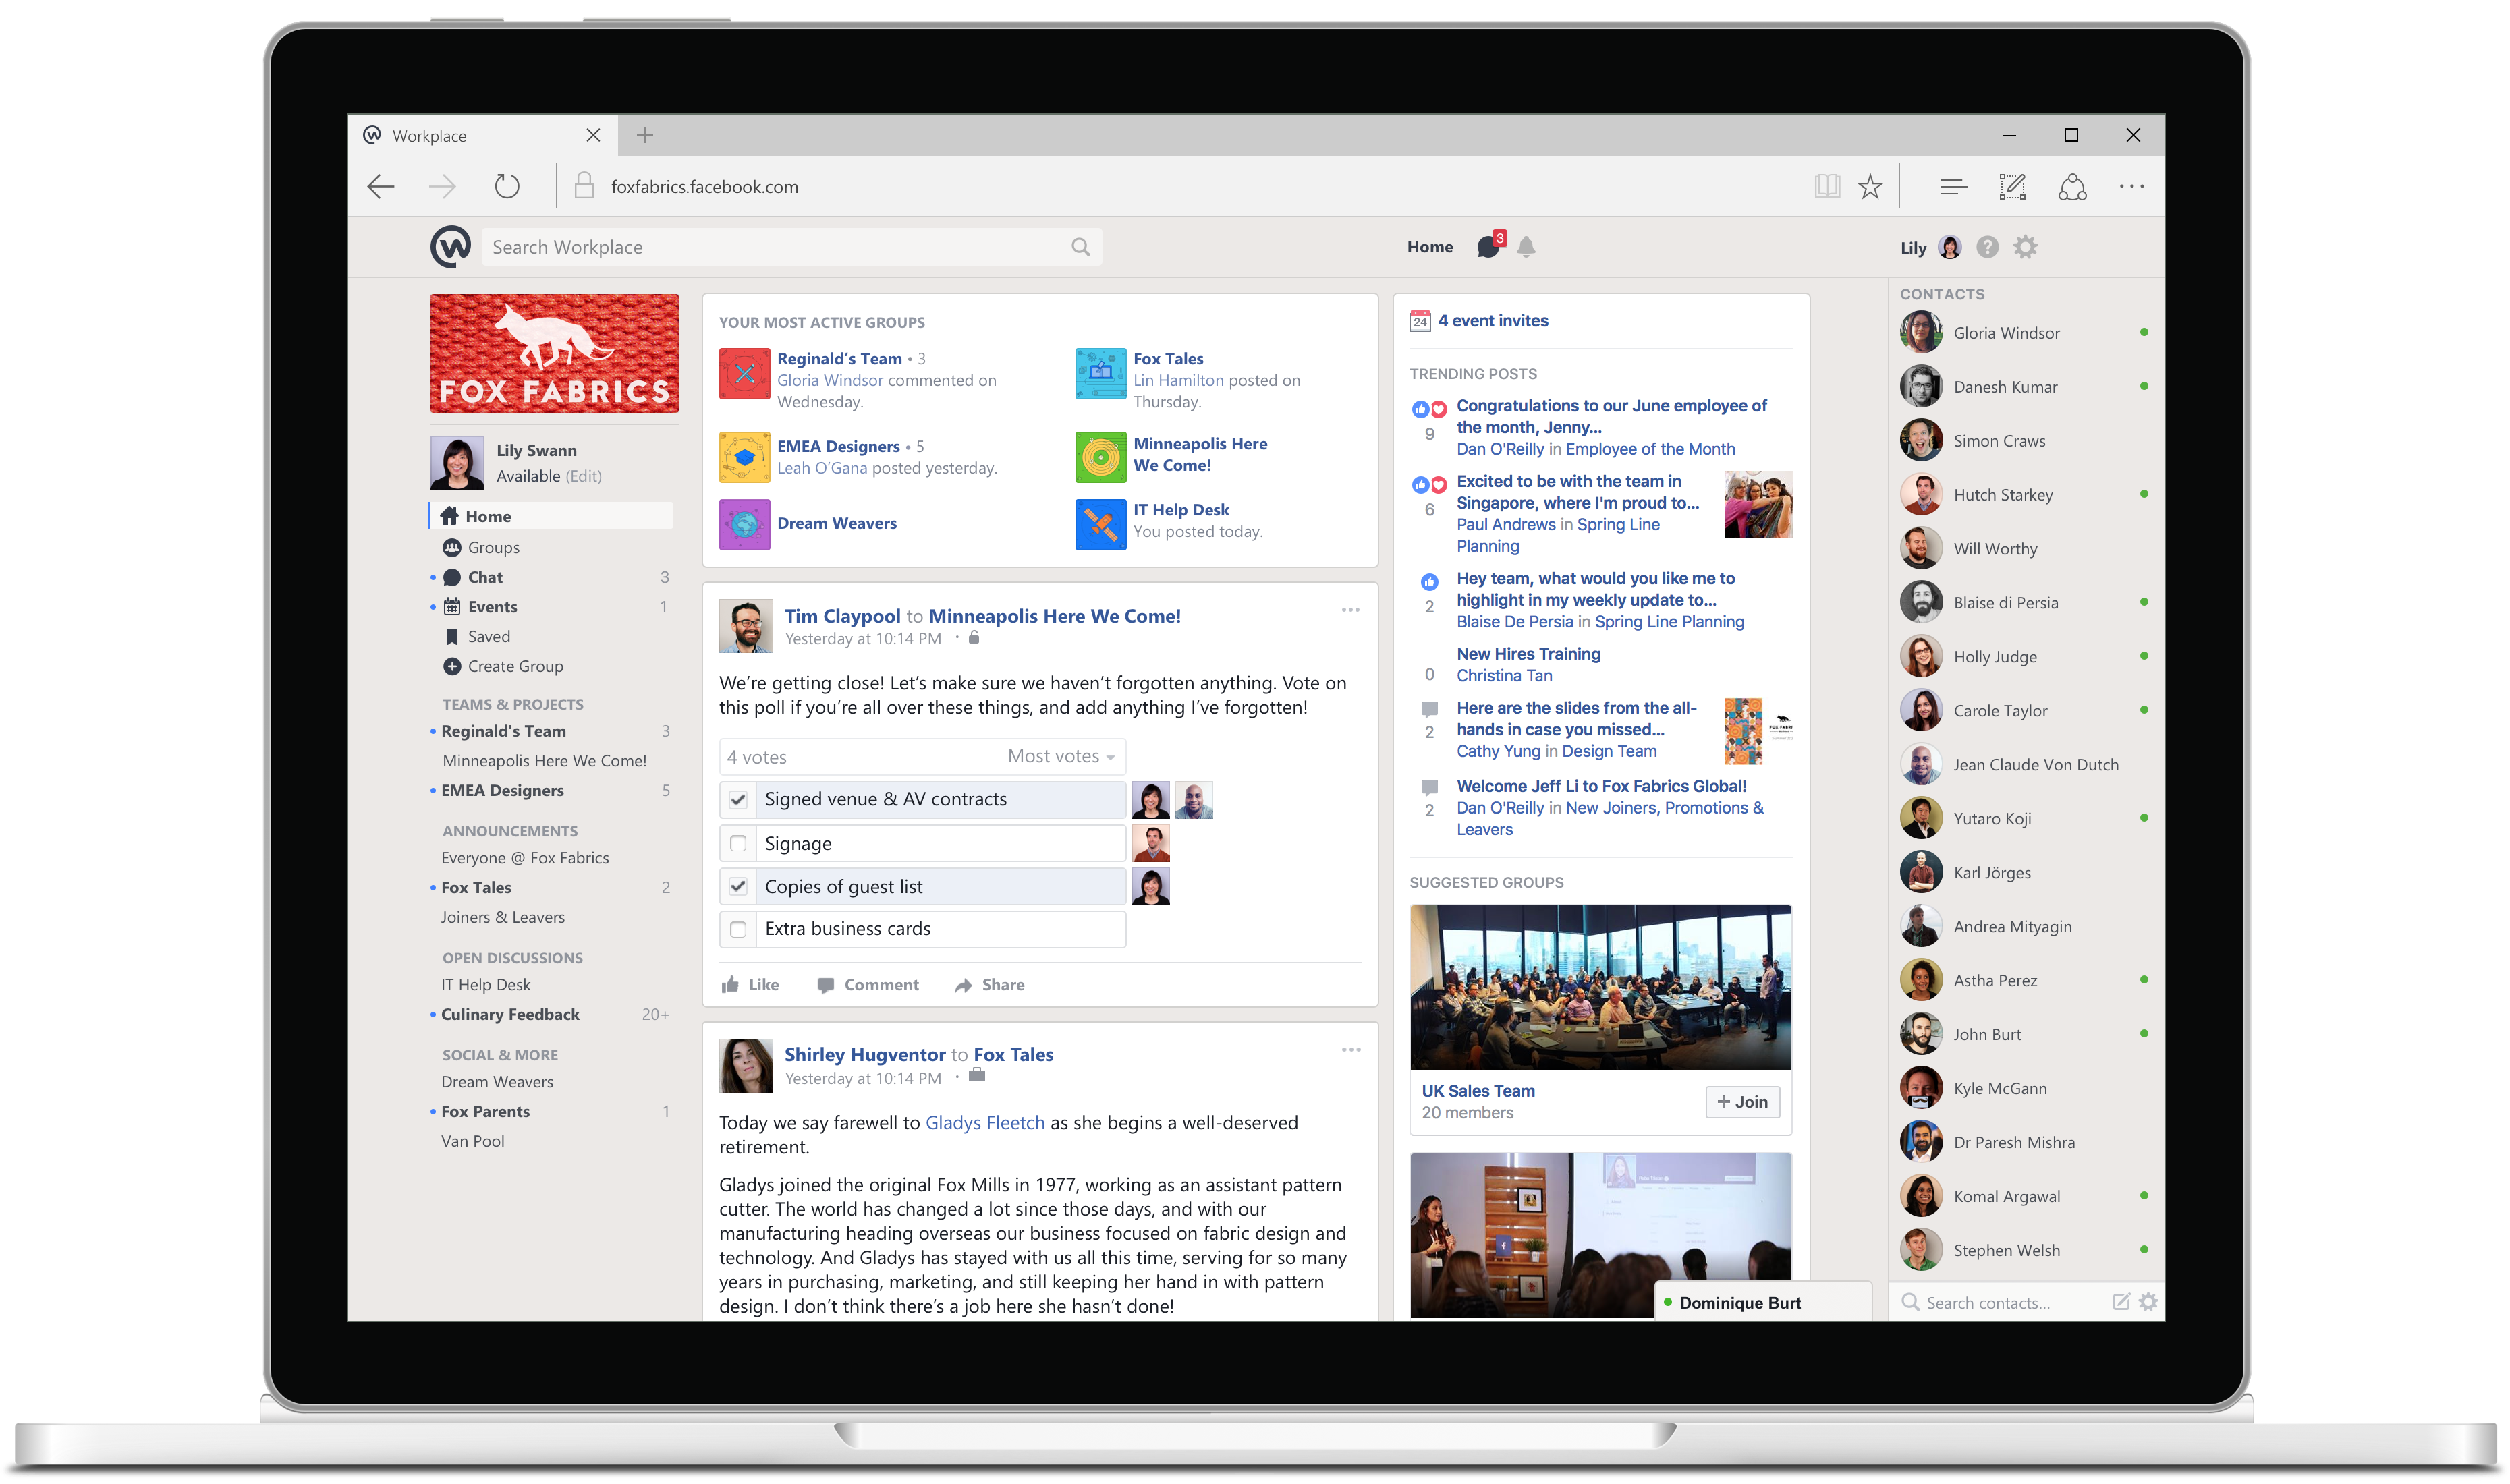 in the next version introducing workplace by facebook some of the key workplace features include events polls and live streaming which allows organizations to broadcast content to employees in real time